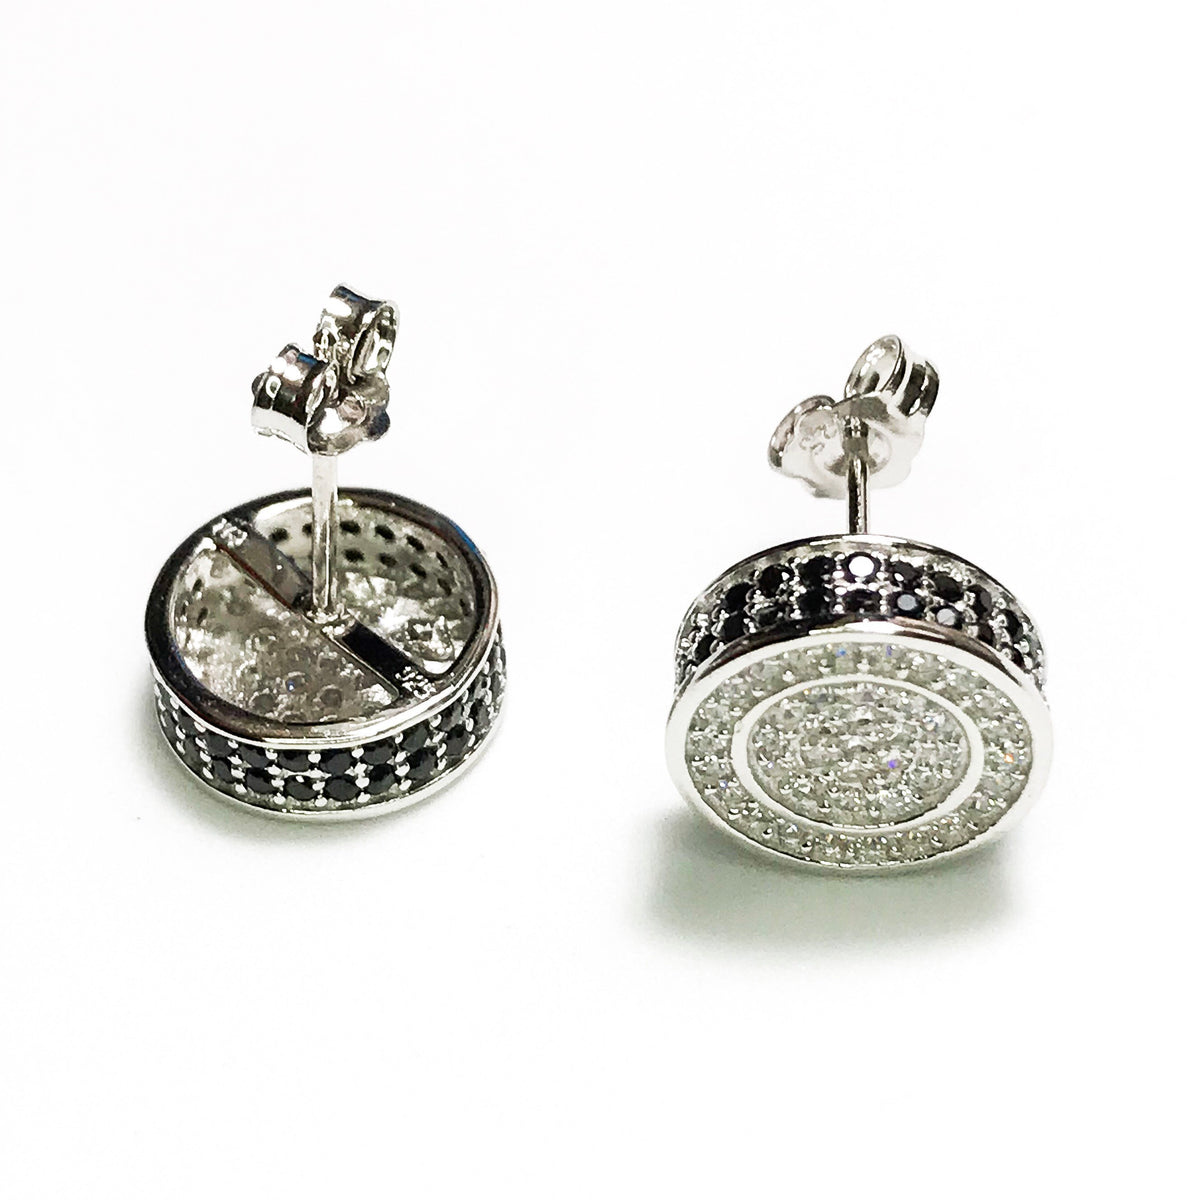 NEW 14K White Gold Layered on .925 Sterling Silver Circle with Black Stones Stud Earrings